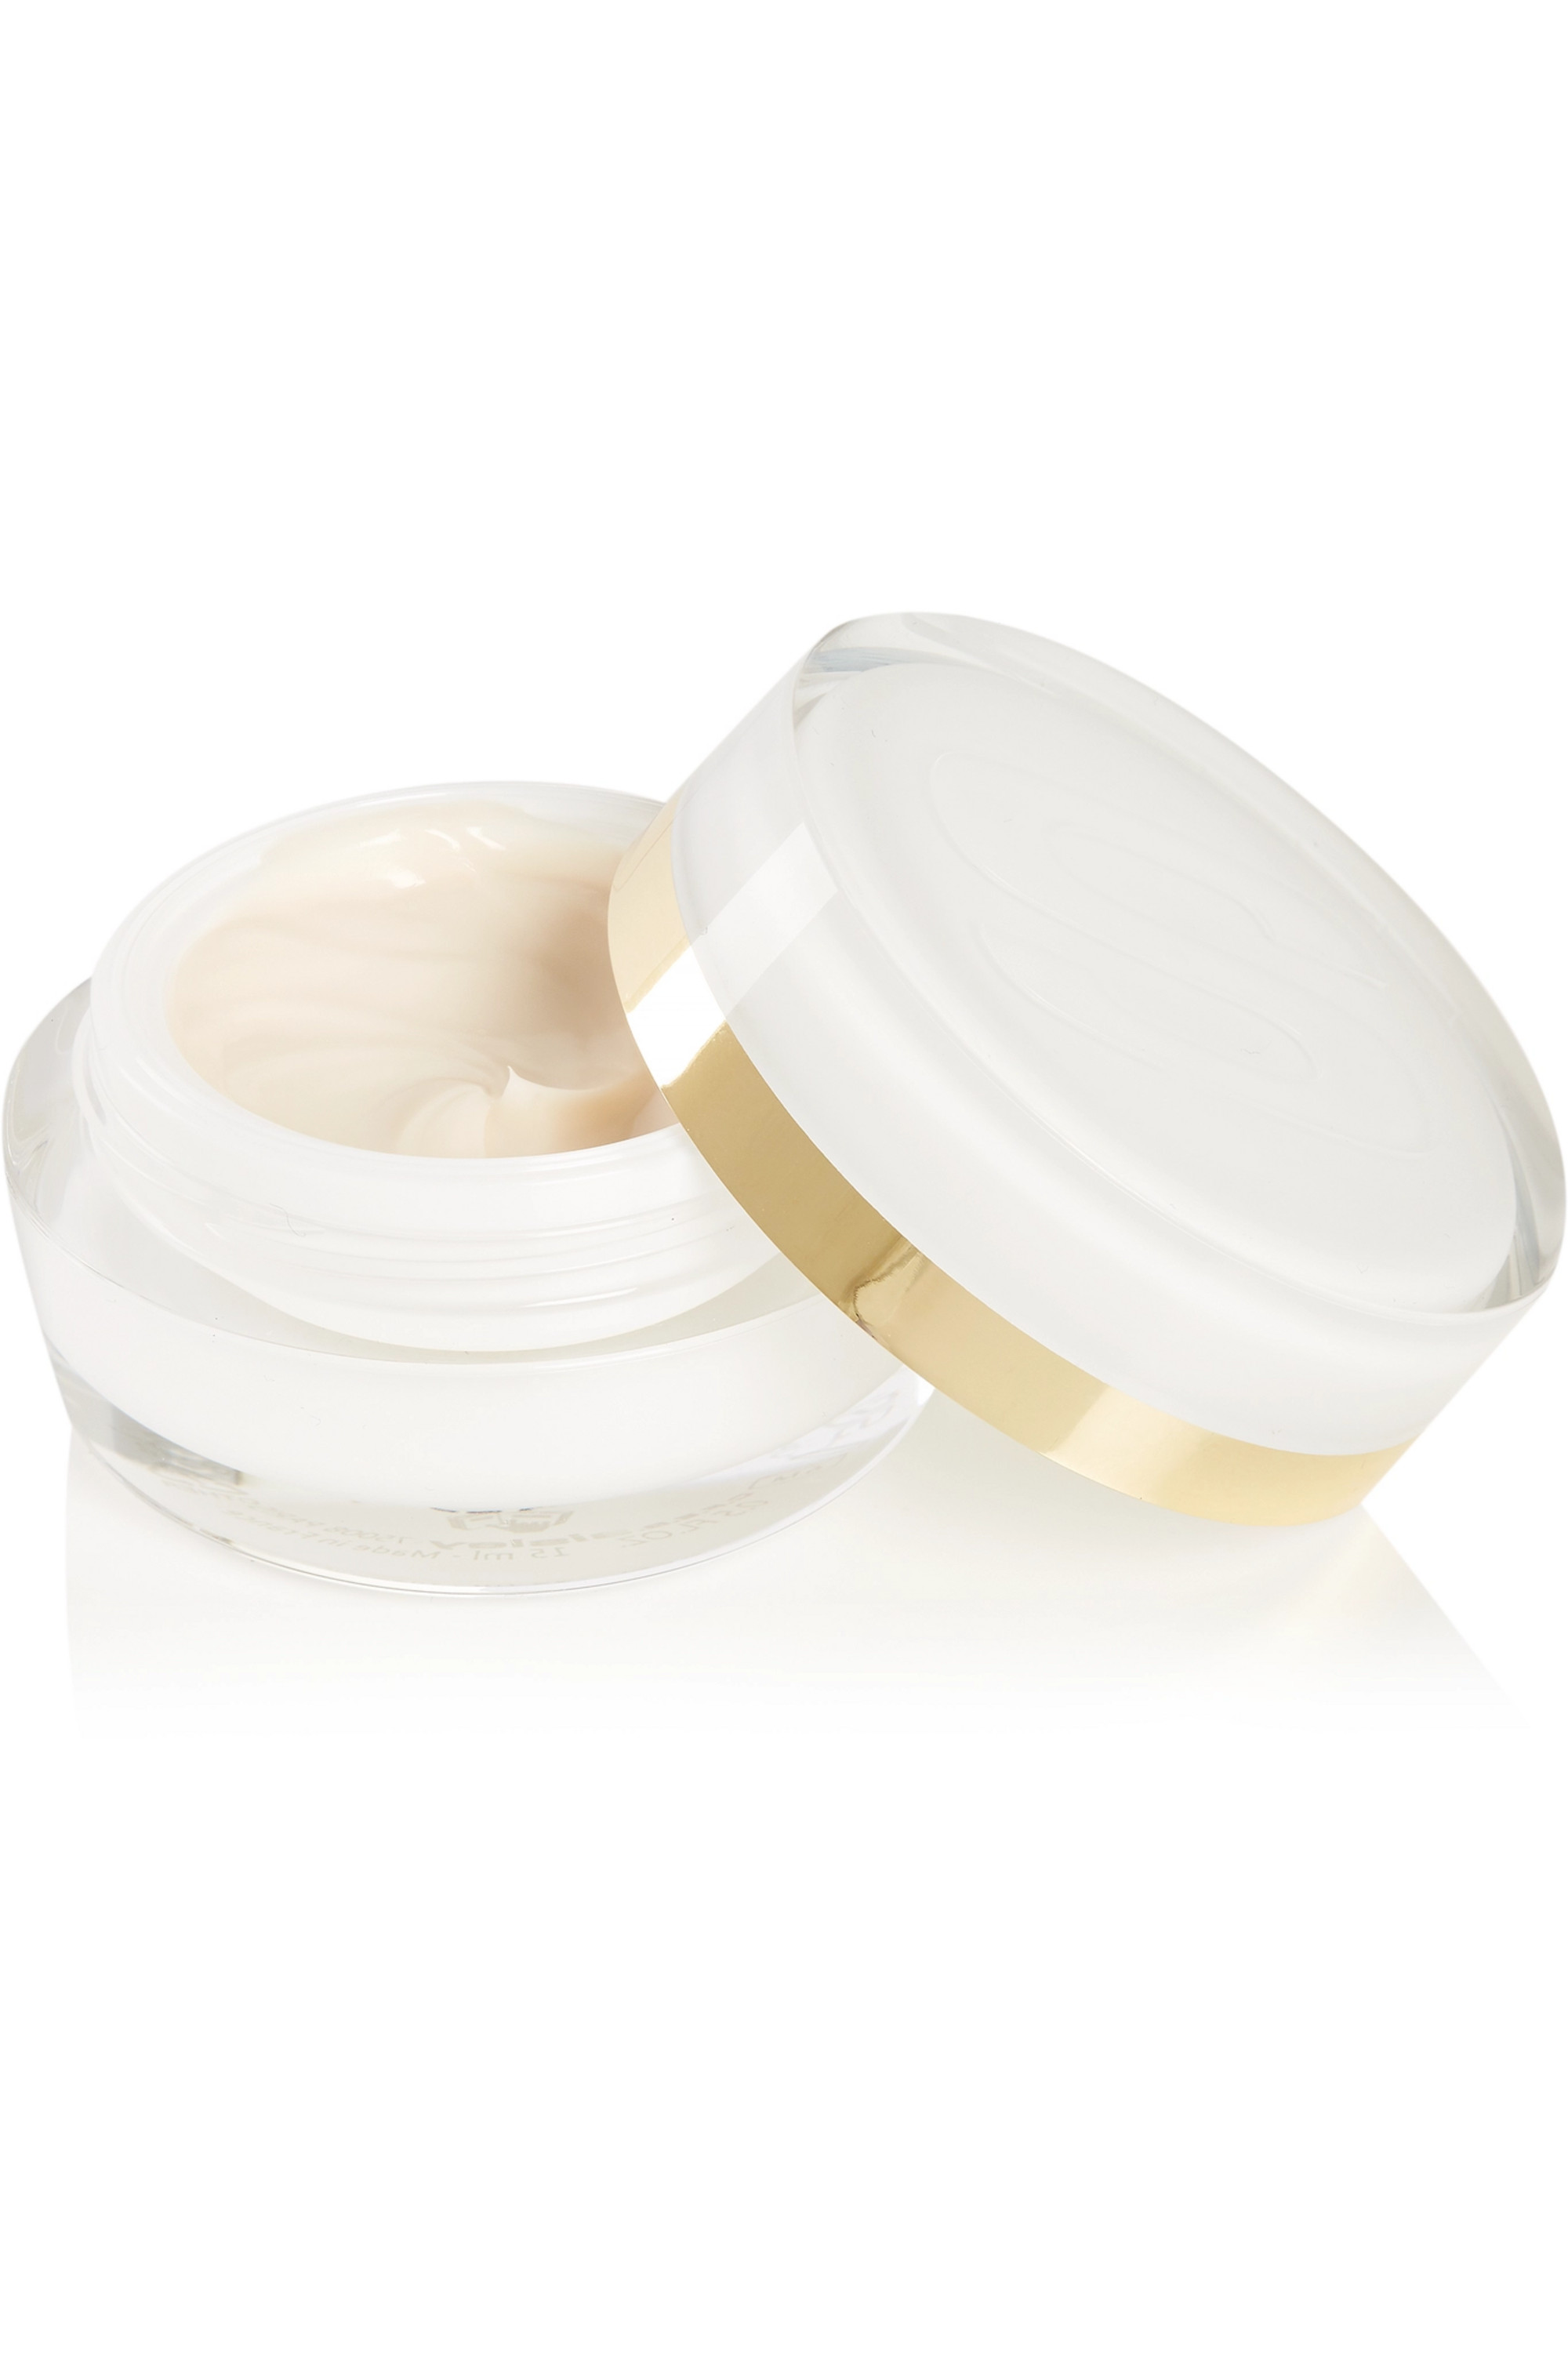 Sisley Sisleÿa L'Integral Anti-Age Eye and Lip Contour Cream, 15ml